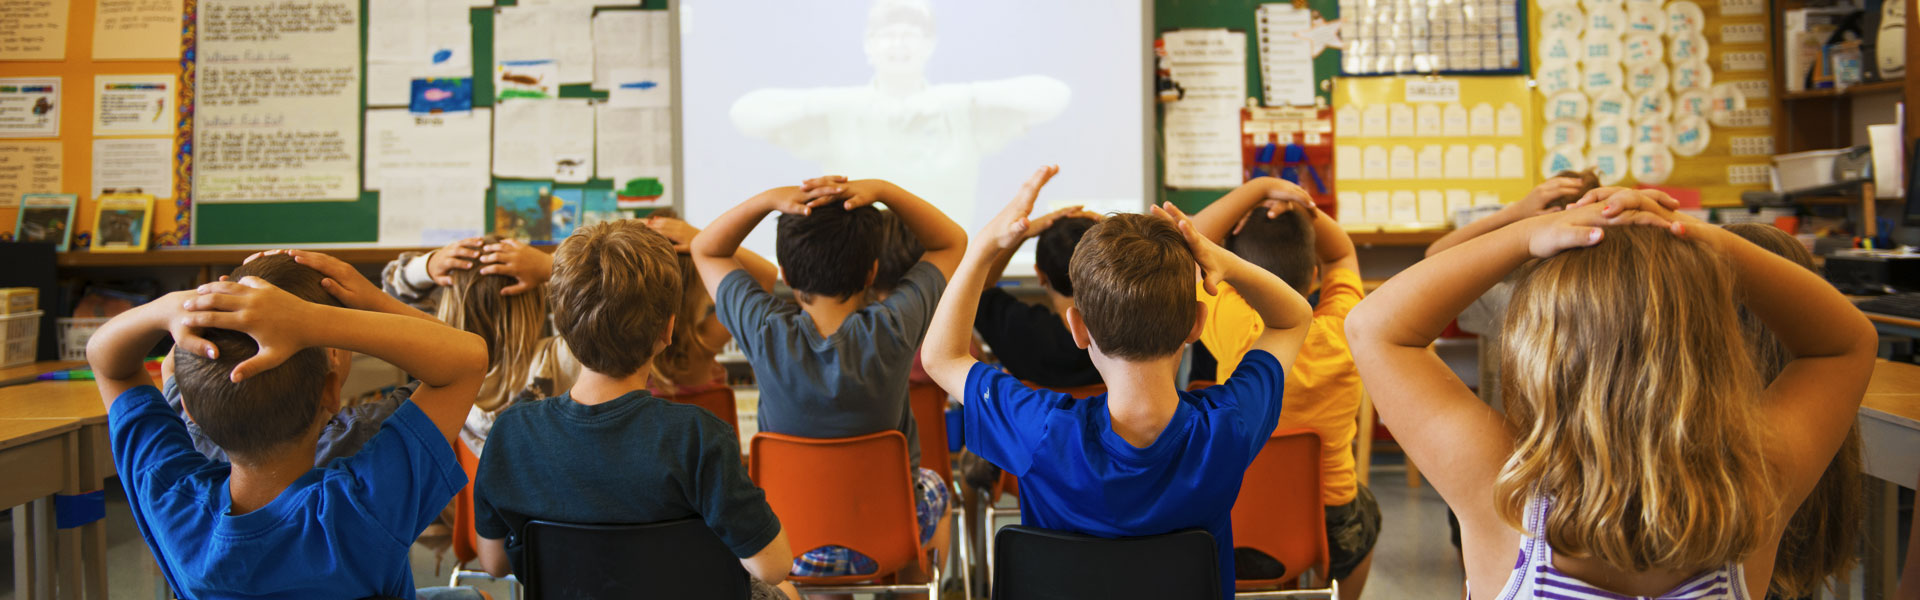 Kids in the classroom watching a presentation at the front of the class on the projection screen